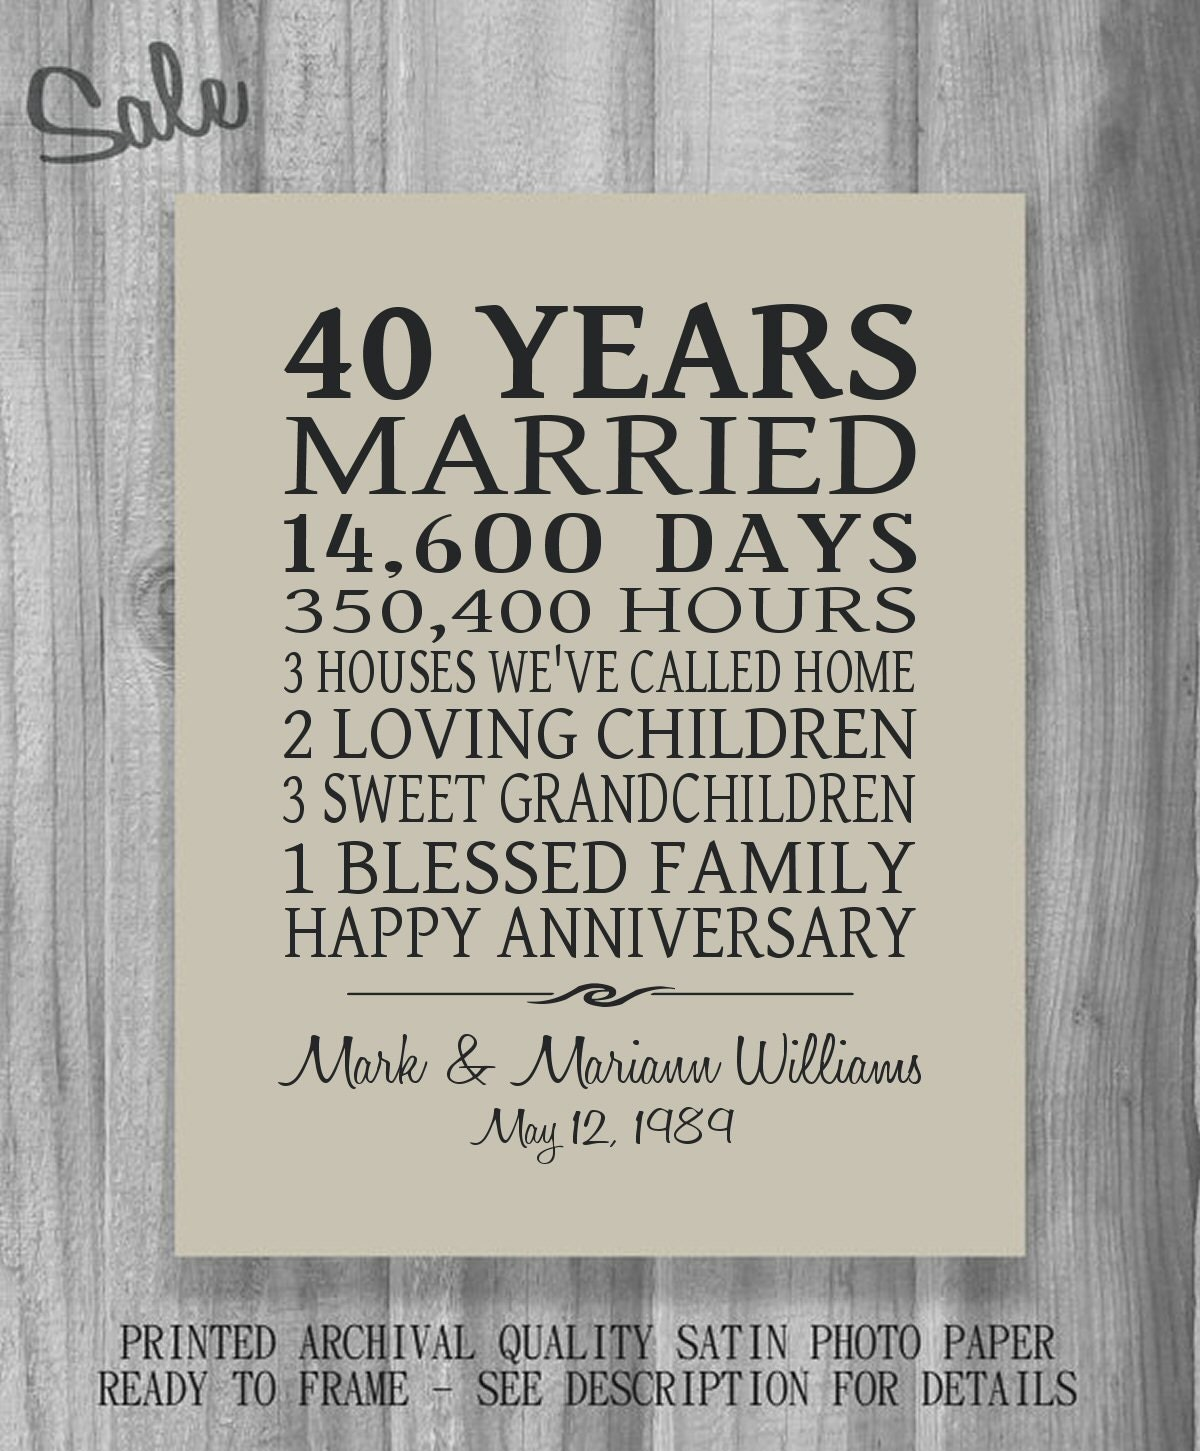 Gift For Wedding Anniversary Of Parents: SALE Anniversary Gift Parents Personalized Print Poster Family